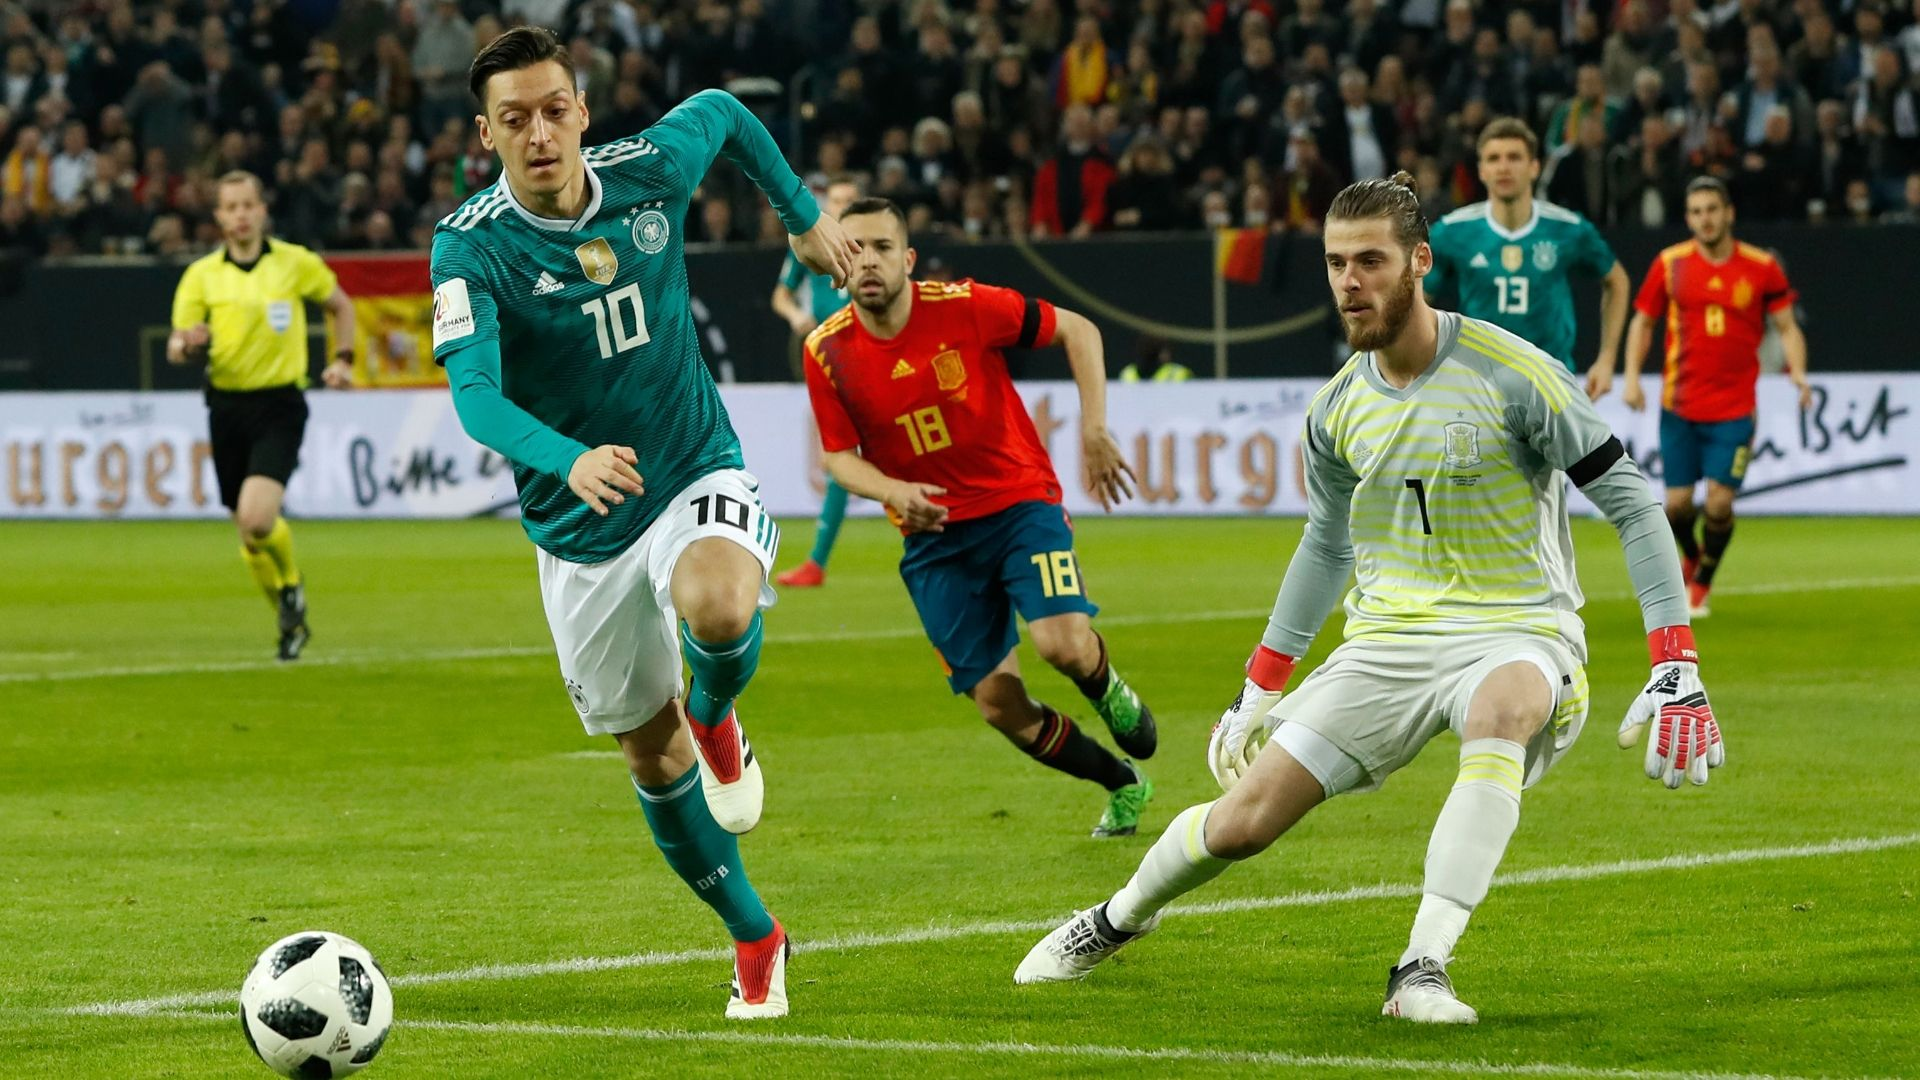 Germany-Spain draw good for fans - Low